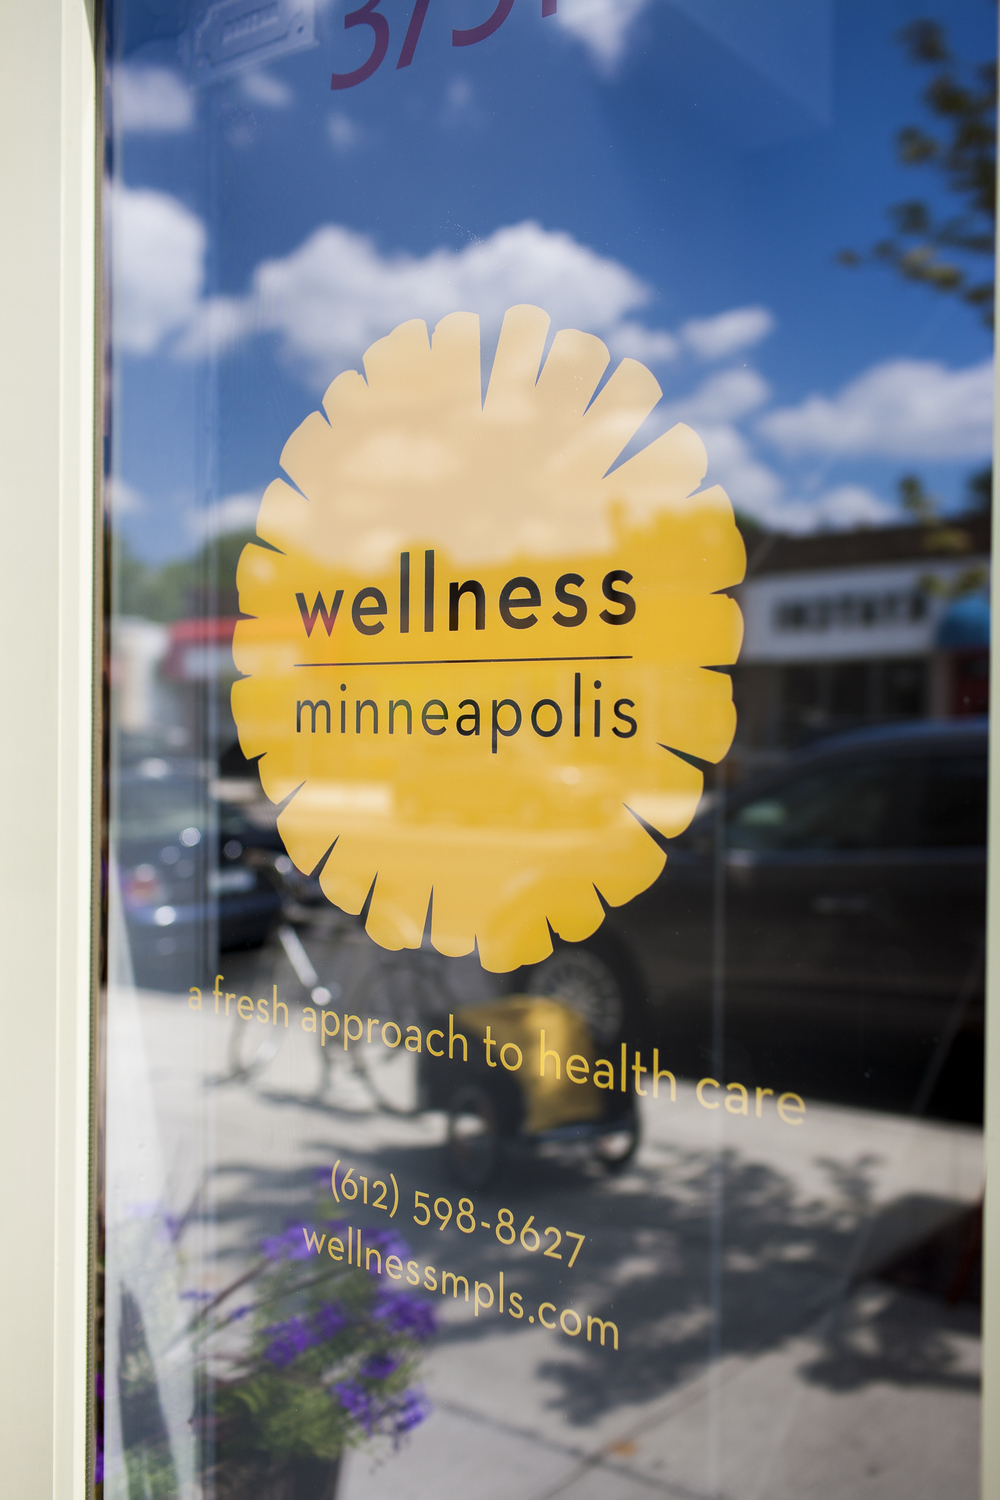 Wellness Minneapolis_002.jpg